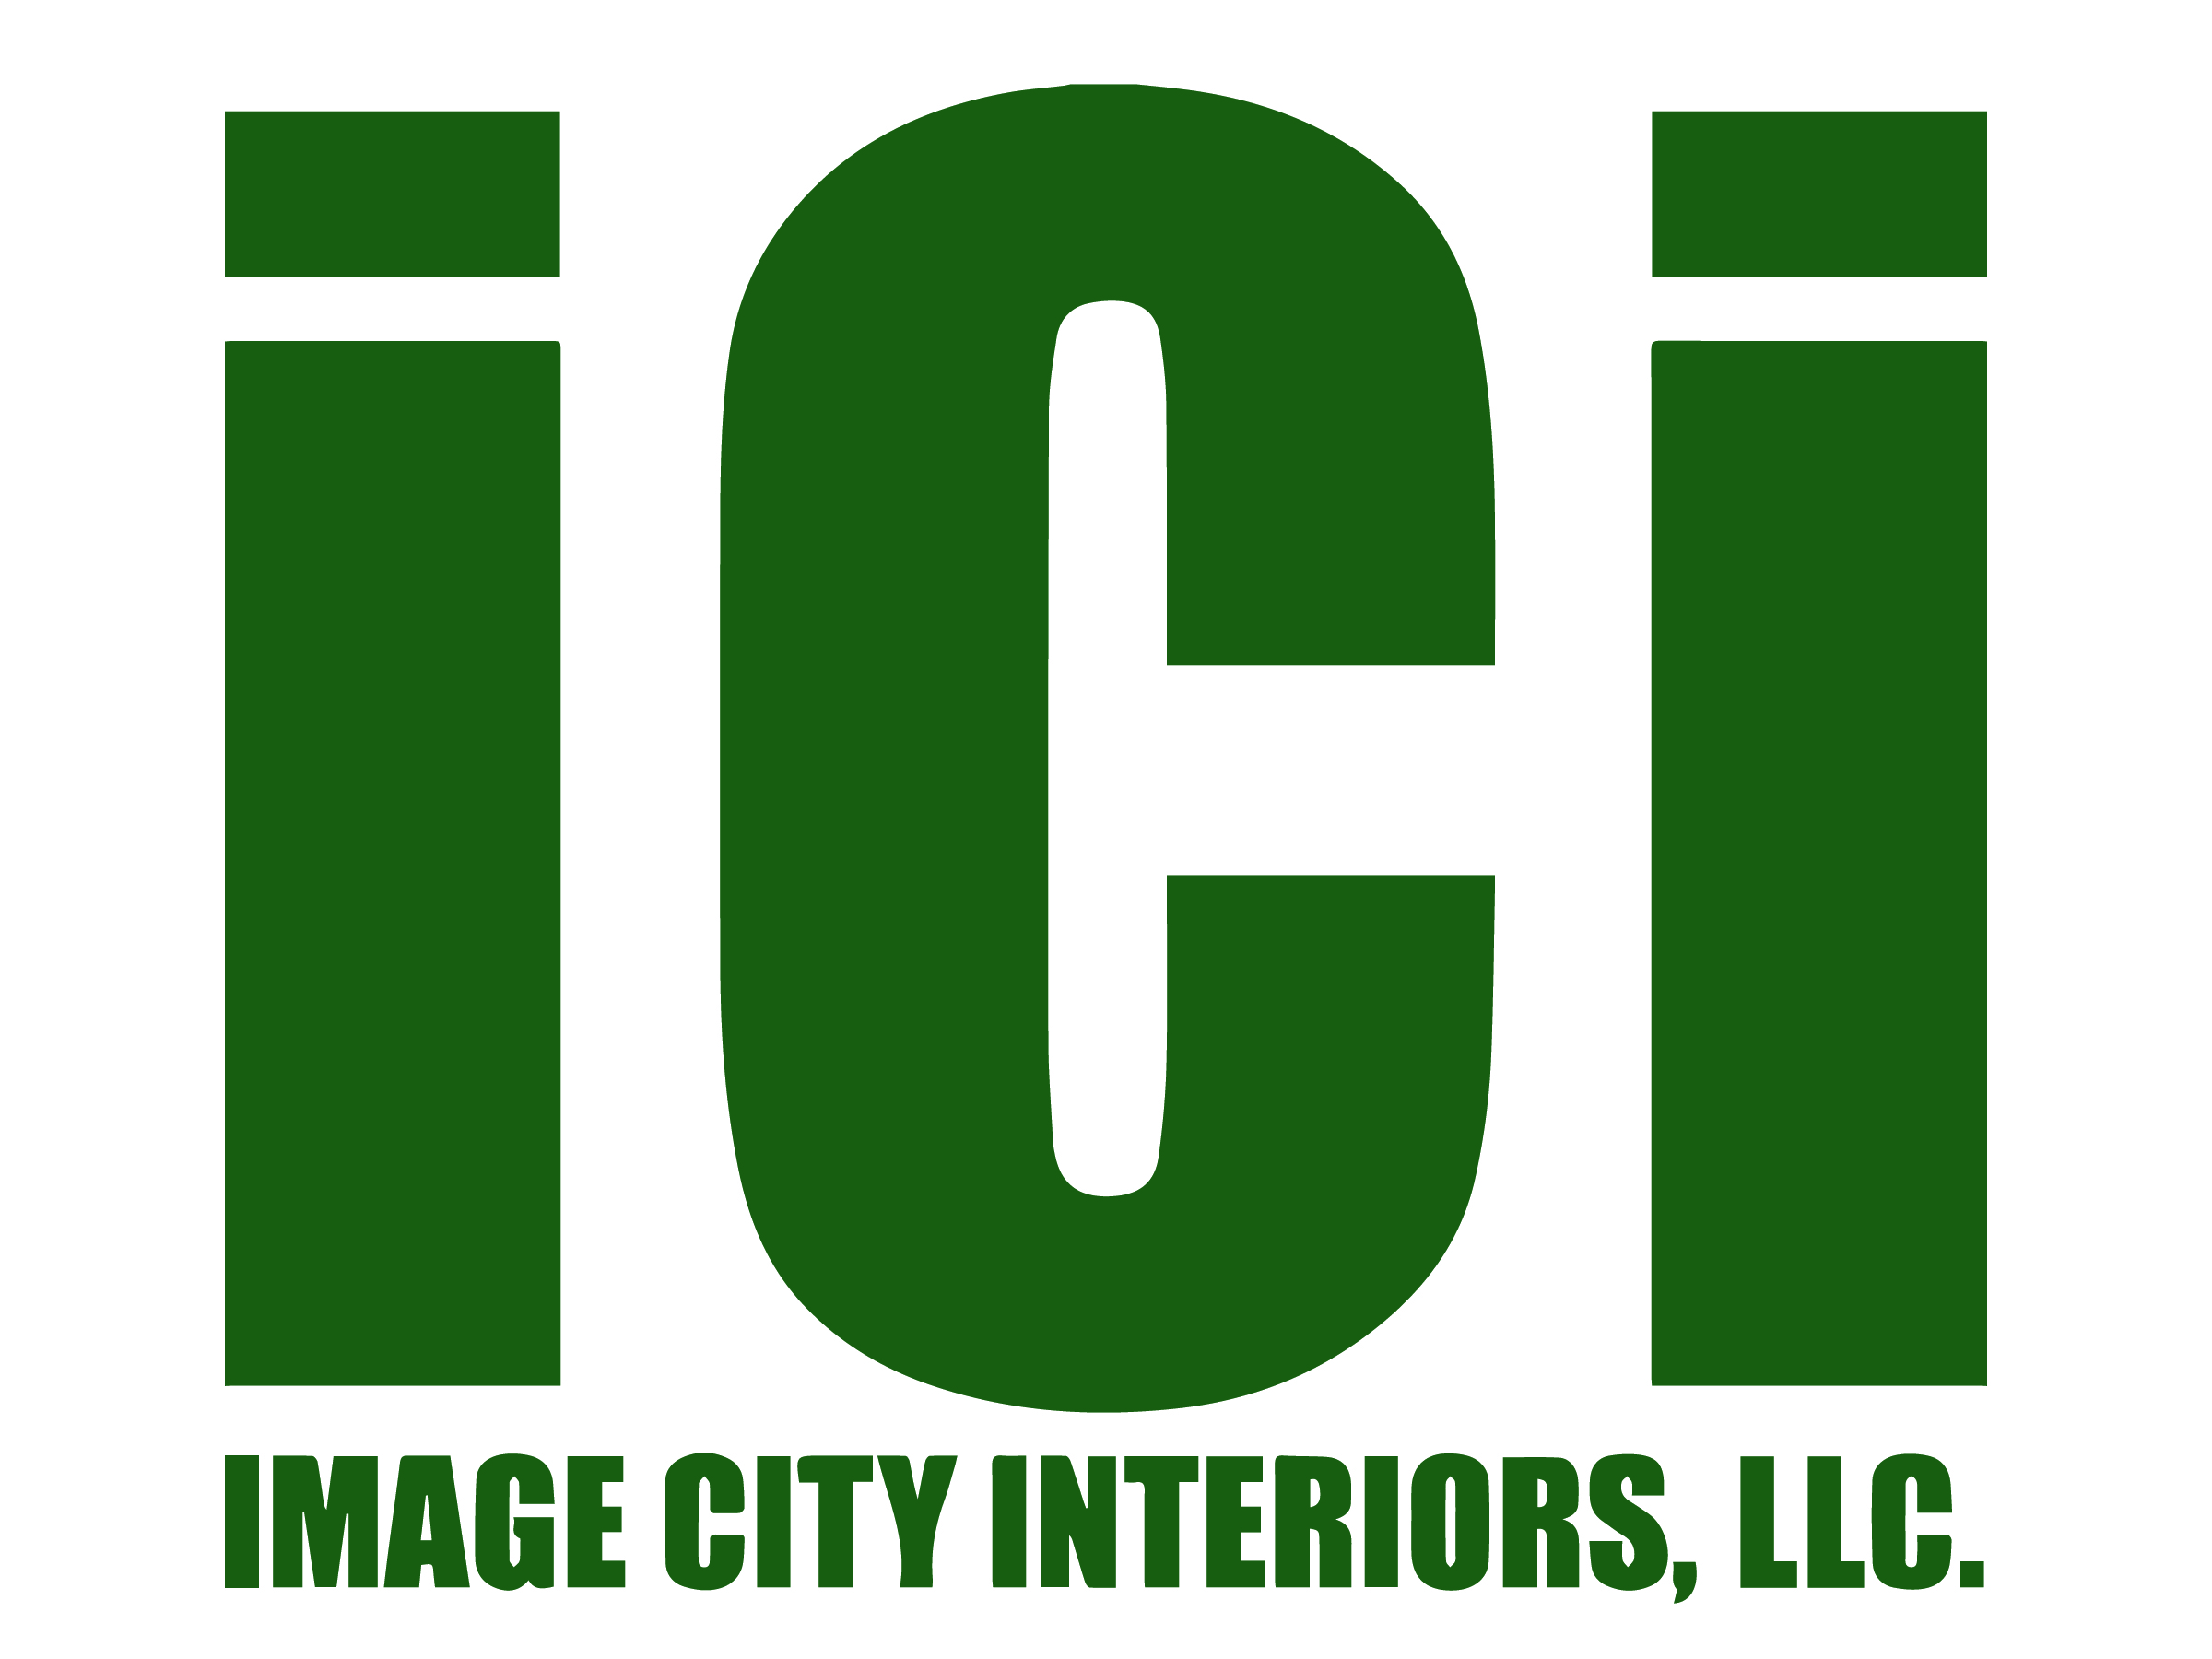 Image City Interiors